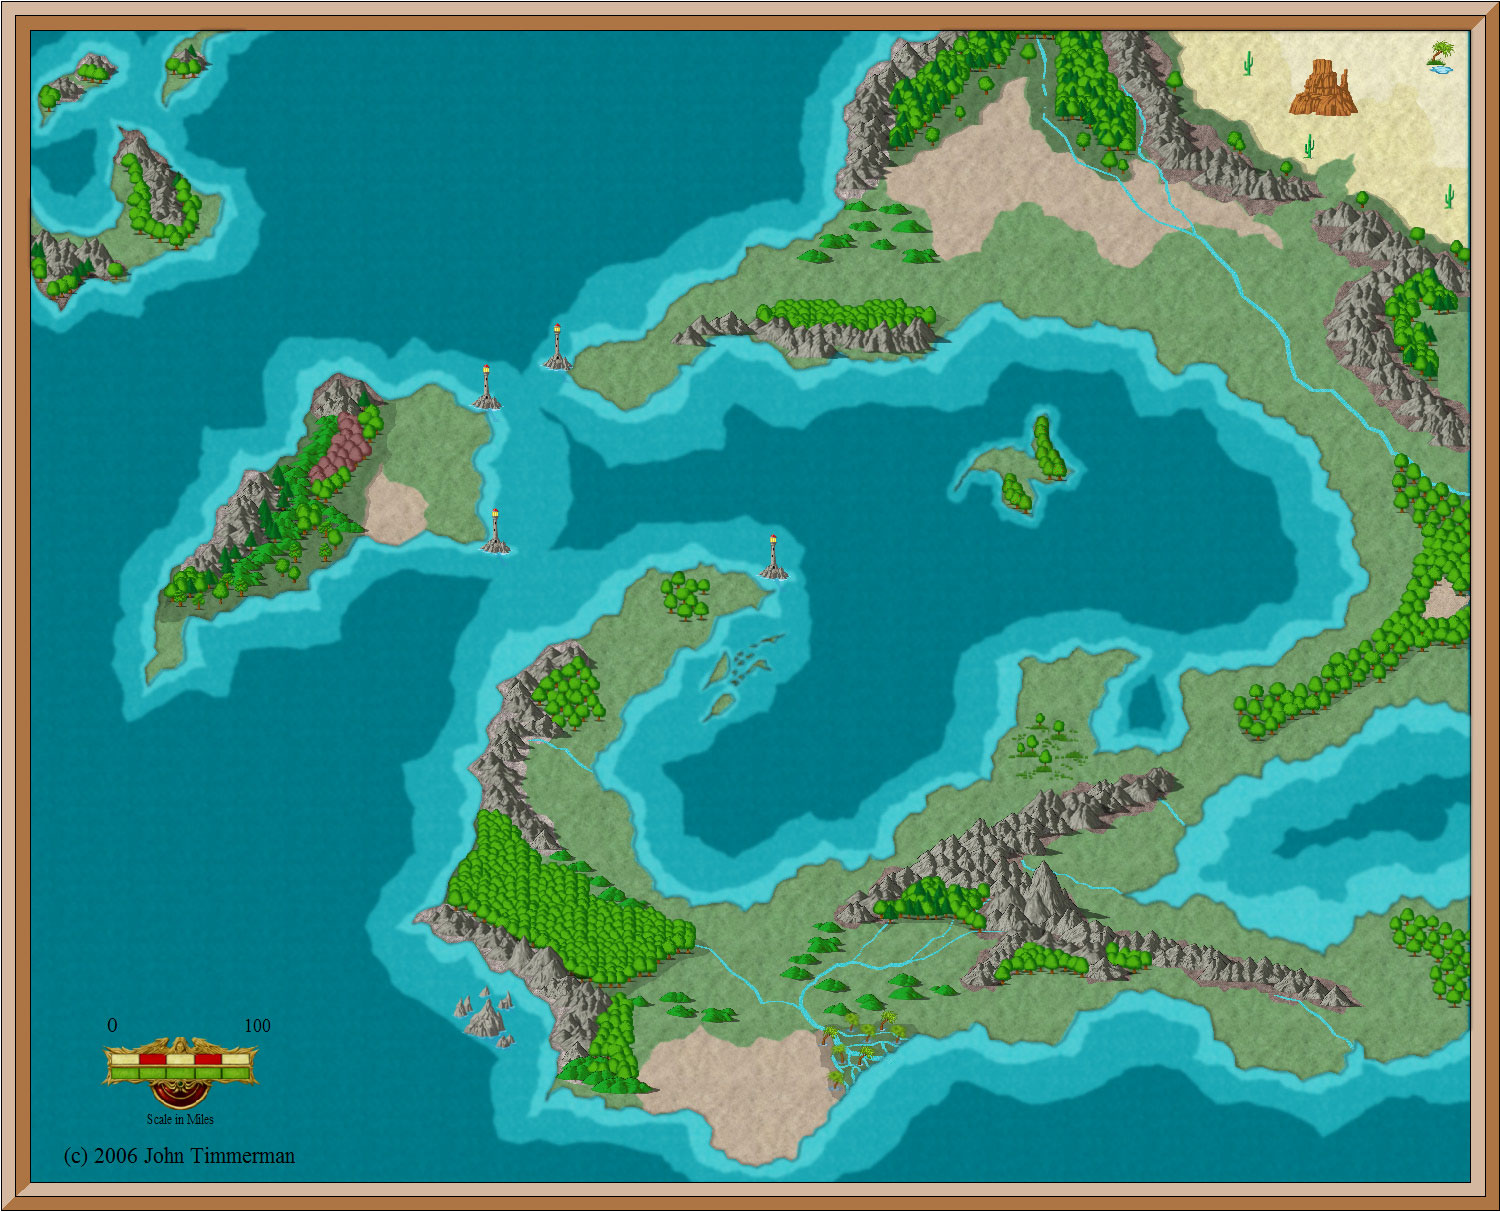 Free Dd World Map Maker.Fantasy World Map 3 Free Fantasy Maps